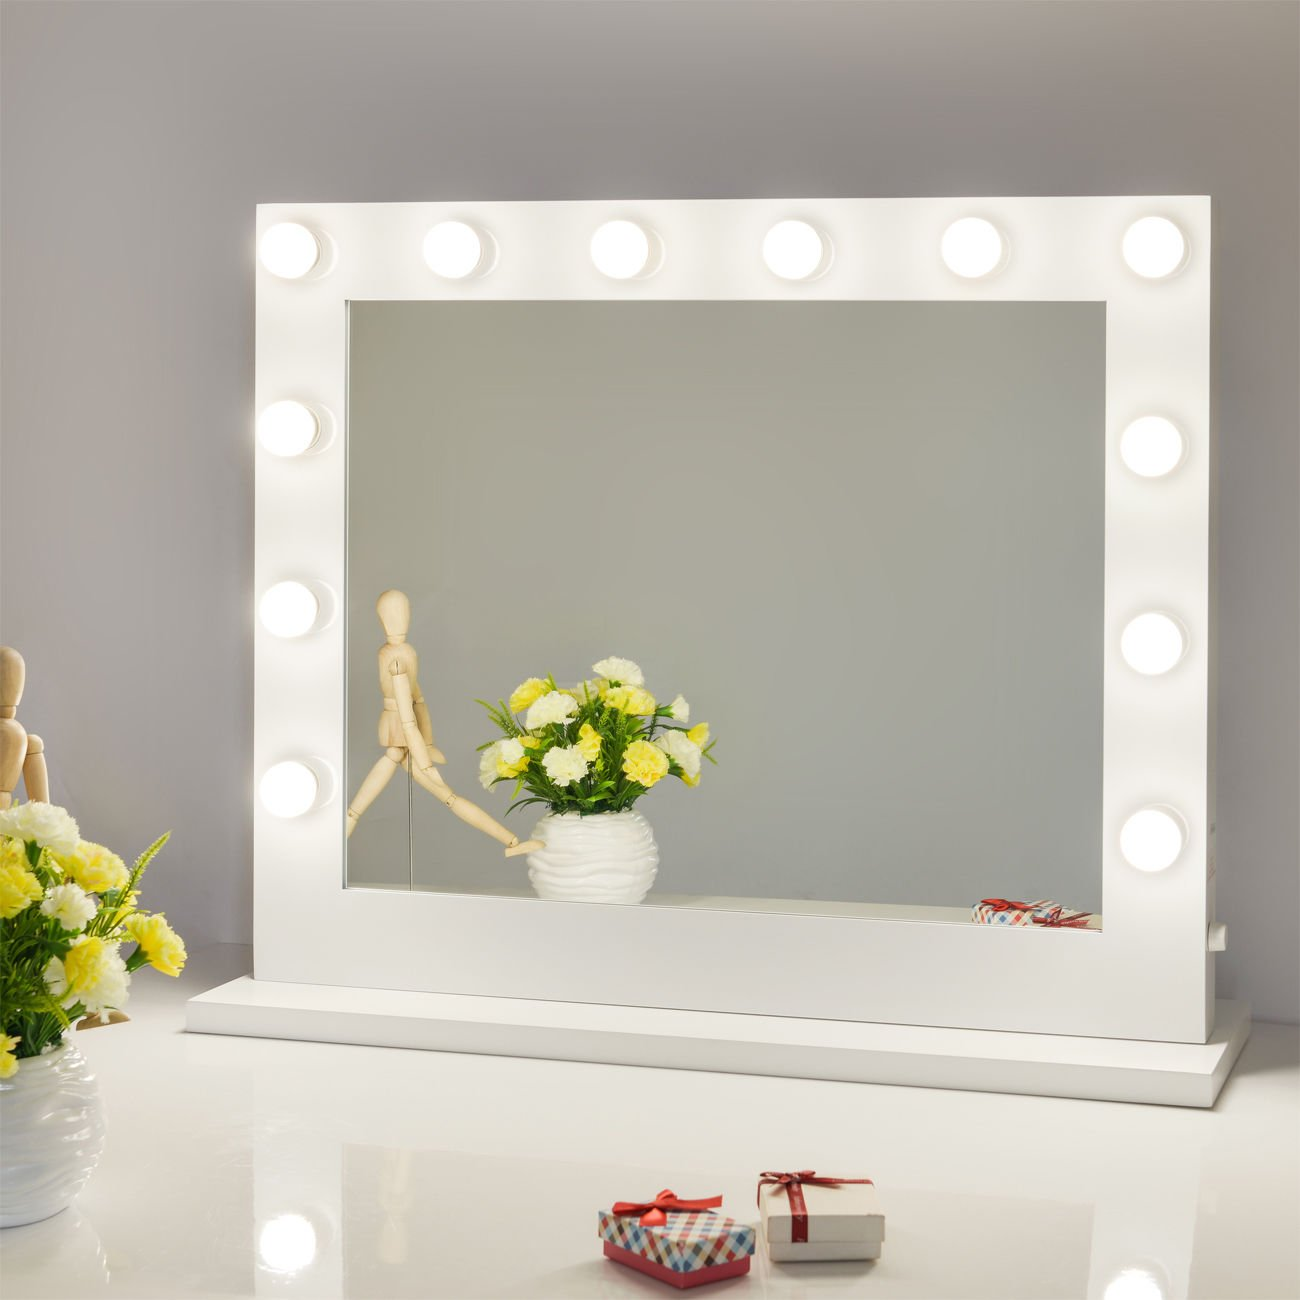 Chende Vanity Mirror With Light Hollywood Makeup Mirror Wall Mounted Lighted  Mirror: Amazon.ca: Home U0026 Kitchen